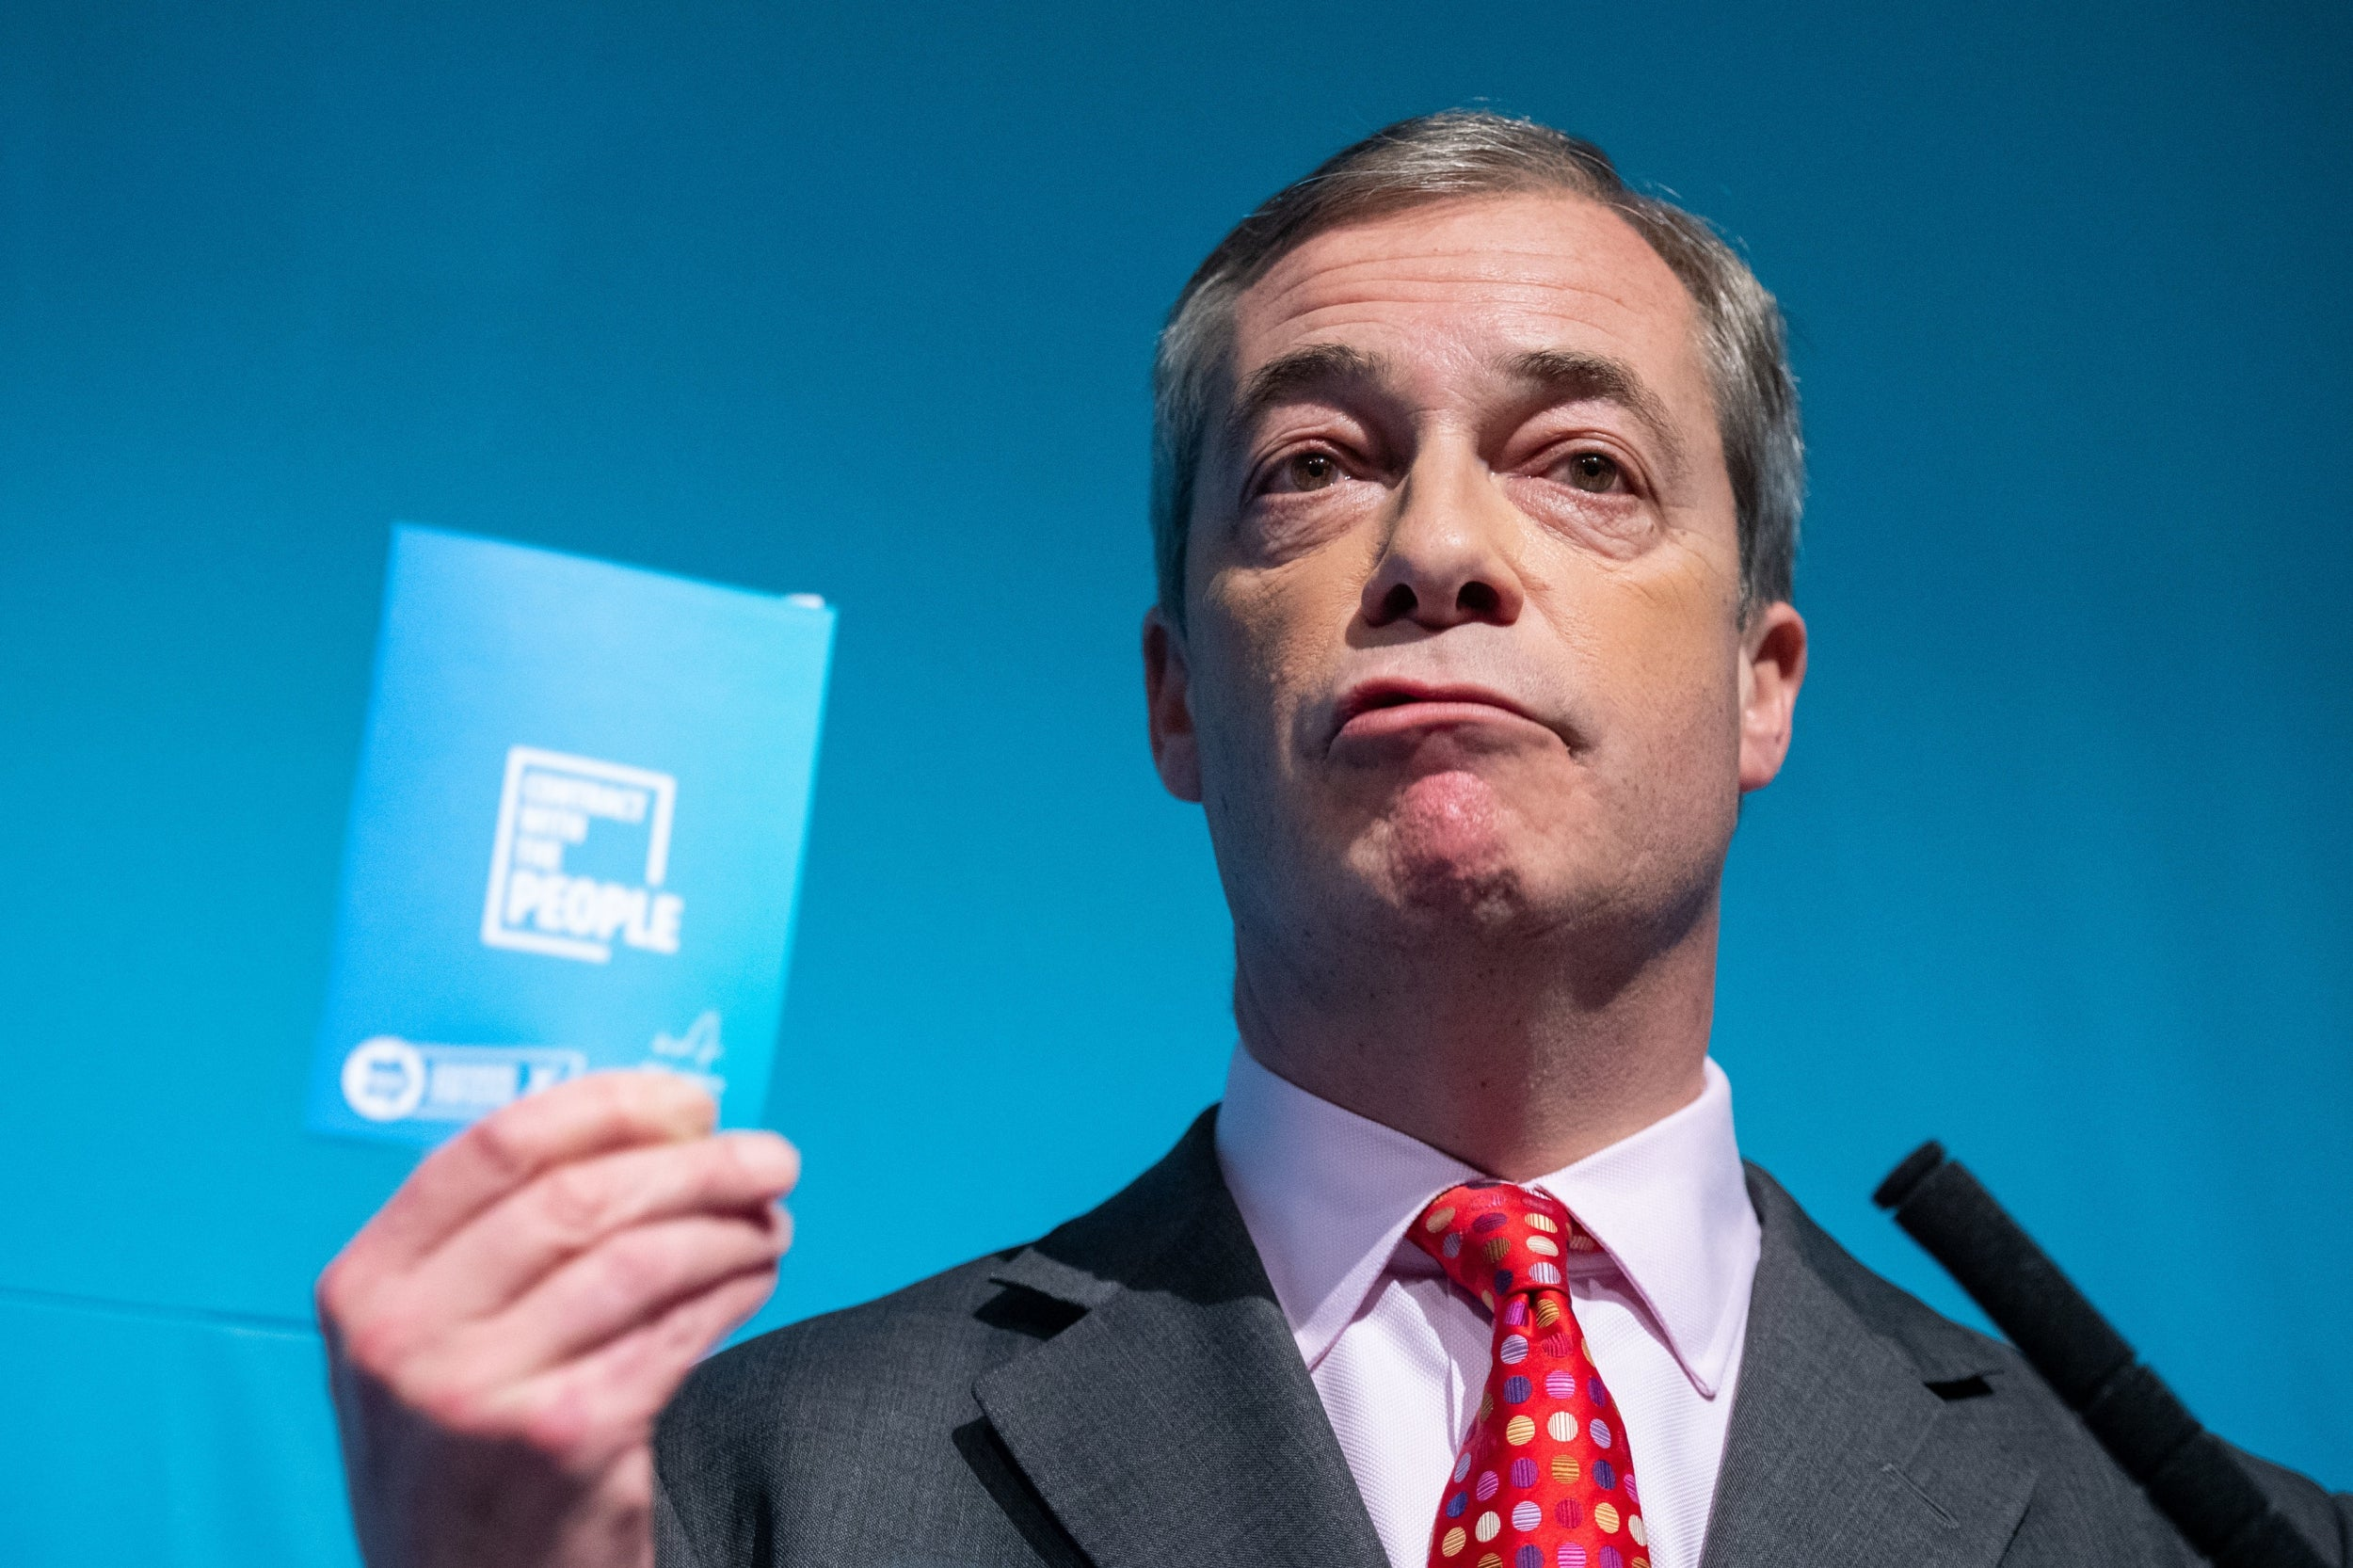 Nigel Farage is on track to securing a landslide for the Tories, as a shock poll in Grimsby shows